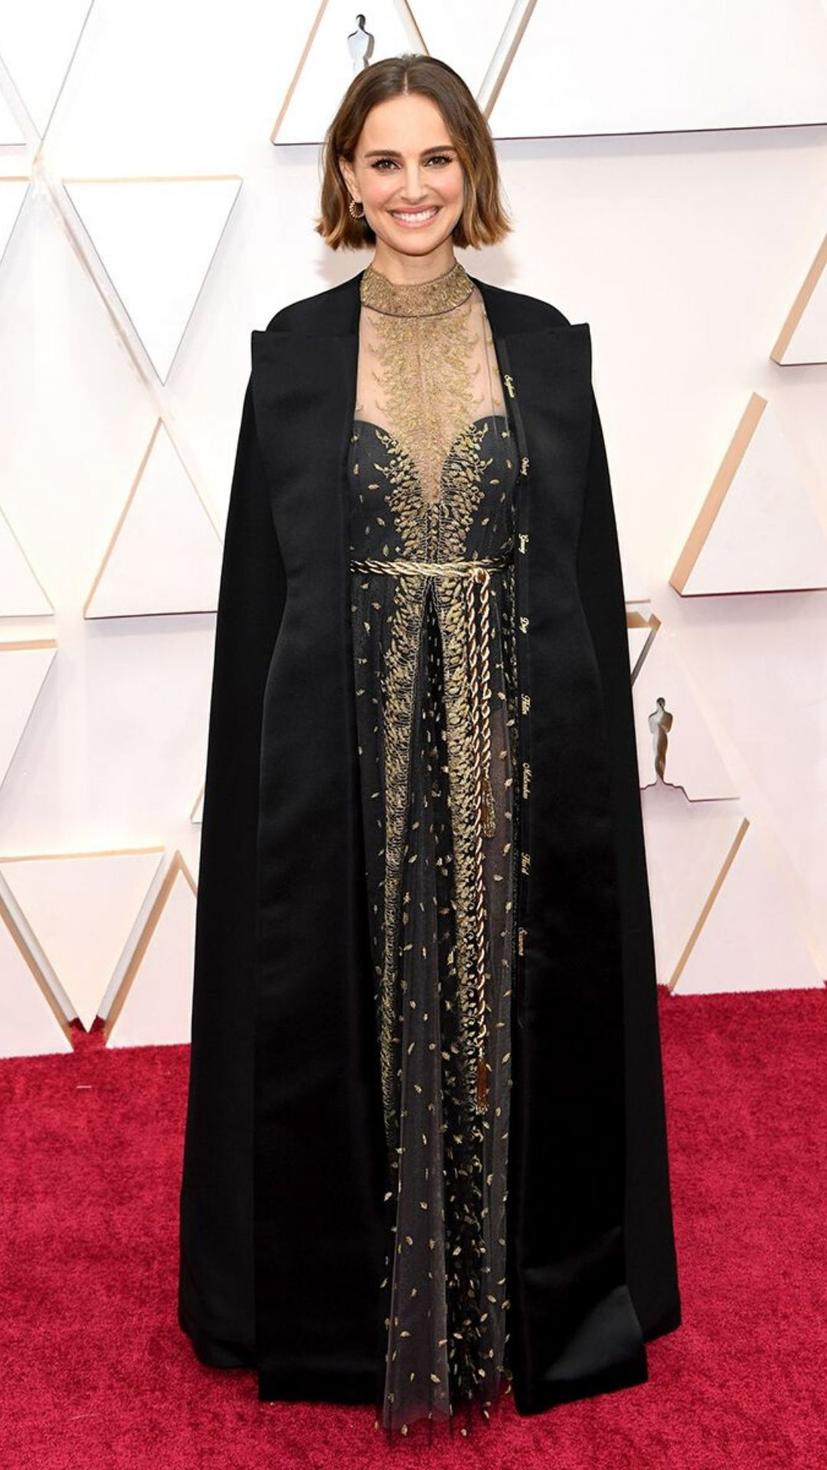 Natalie Portman wears a gown from Dior and jewellery from Cartier